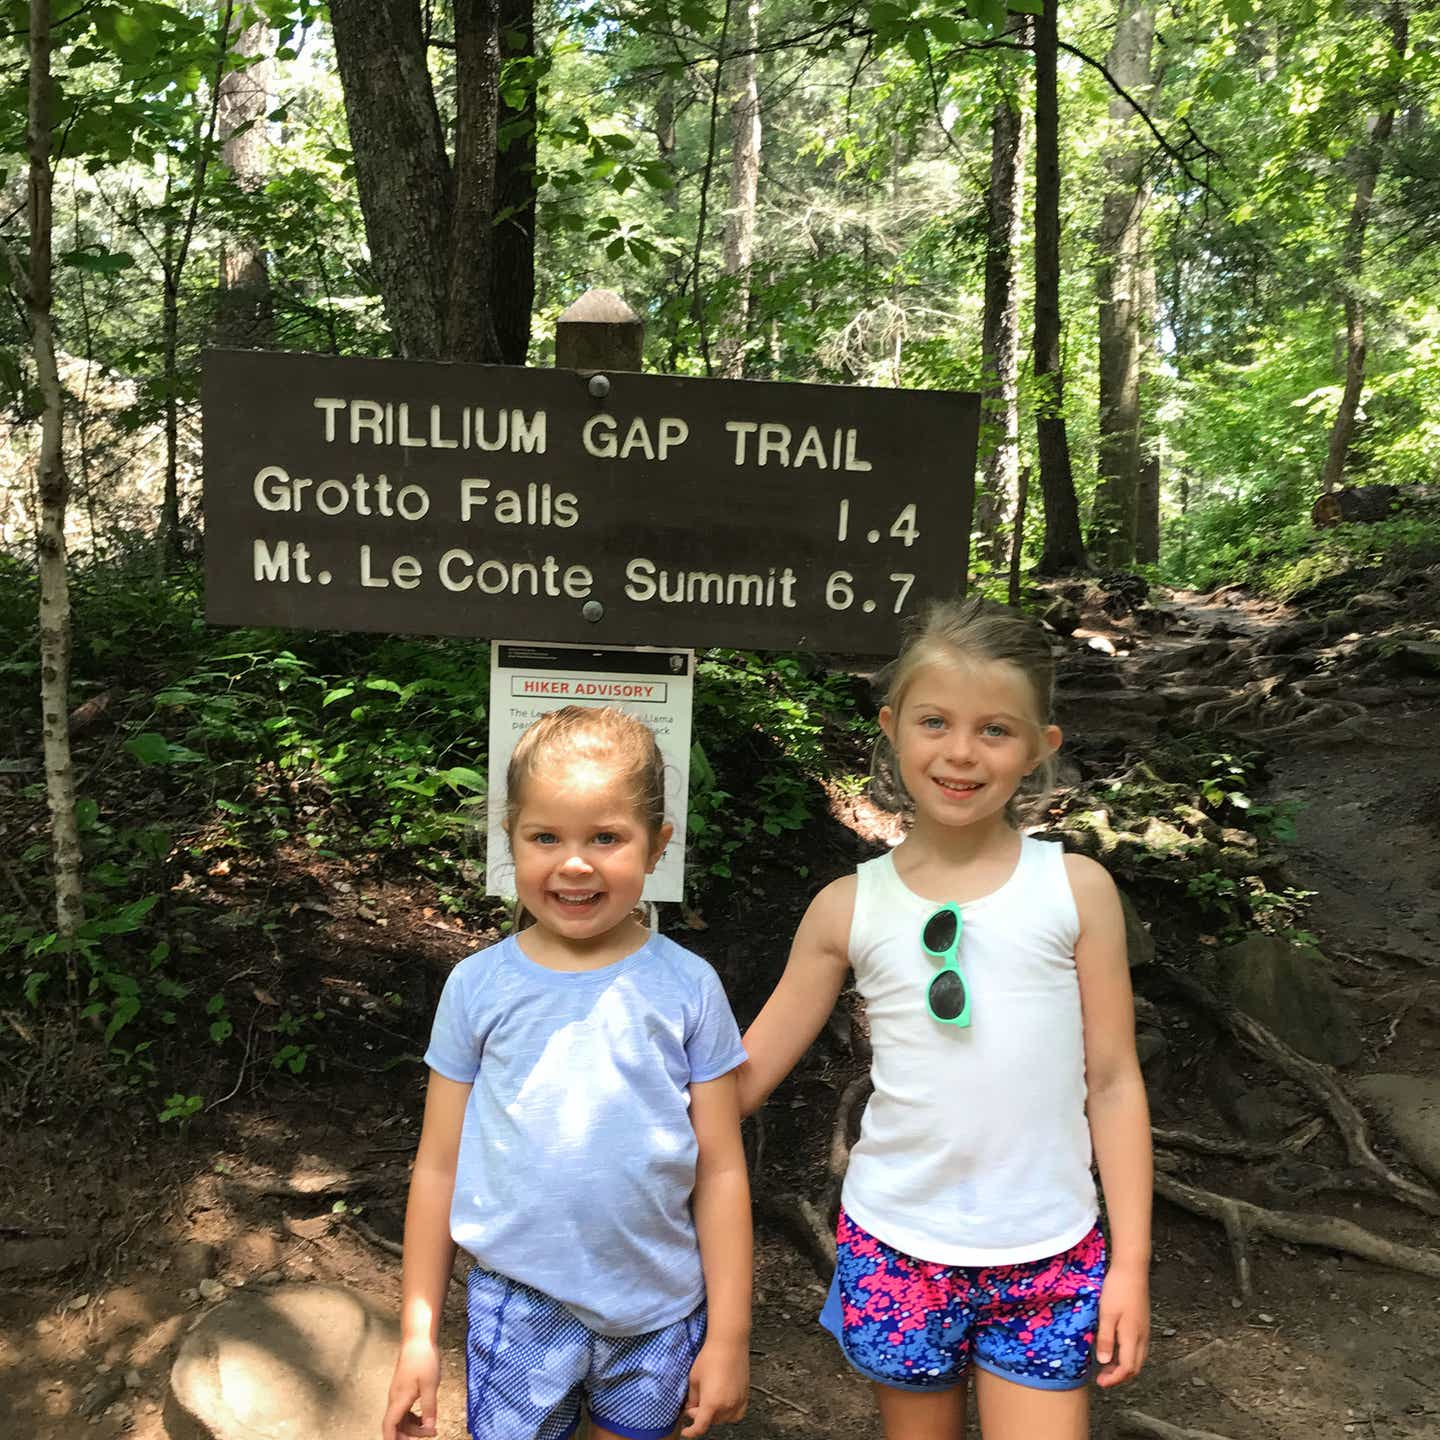 Author, Chris Johnstons' daughters, Kyndall (right), and Kyler (left) pose with a brown, wooden sign that reads, 'Trillium Gap Trail, Grotto Falls 1.4, Mt. LeConte, Summit 6.7.'